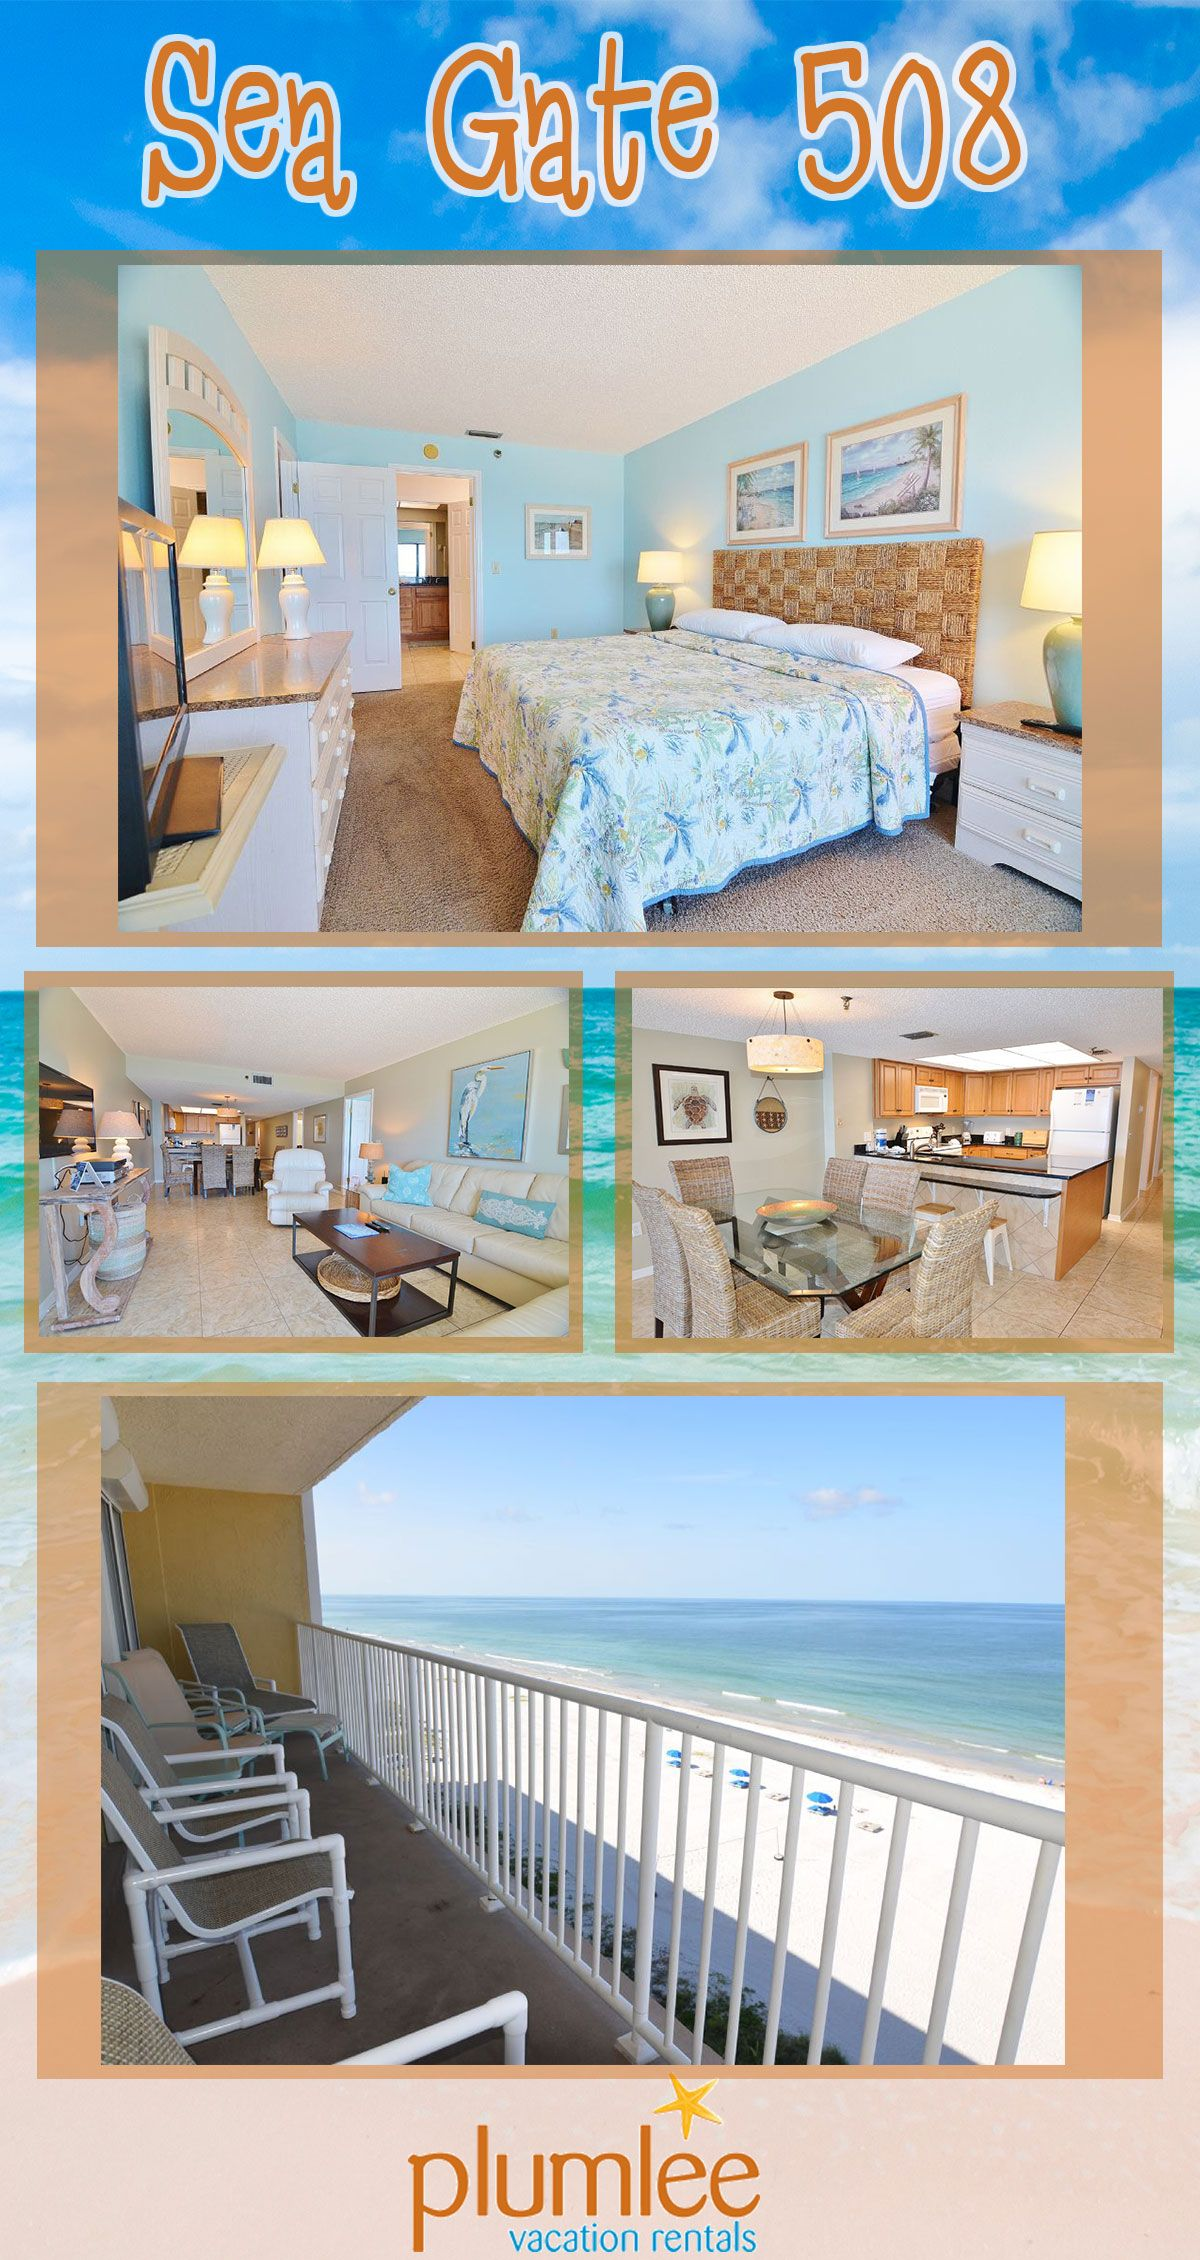 This Spacious 3 Bedroom Condo Has Room For 8, And Is